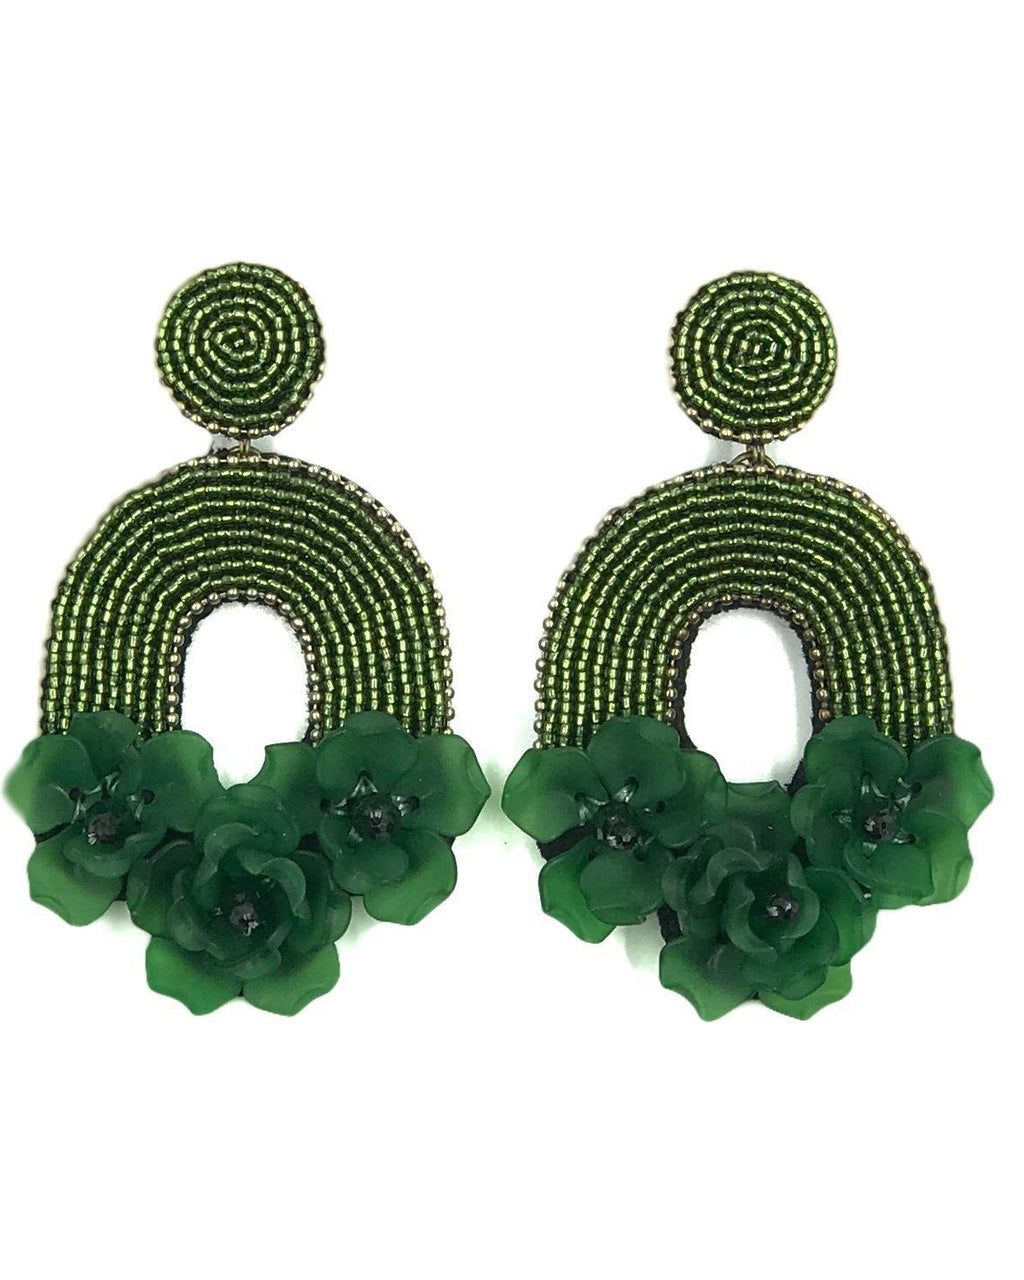 Flora Belle Earrings - Emerald Green